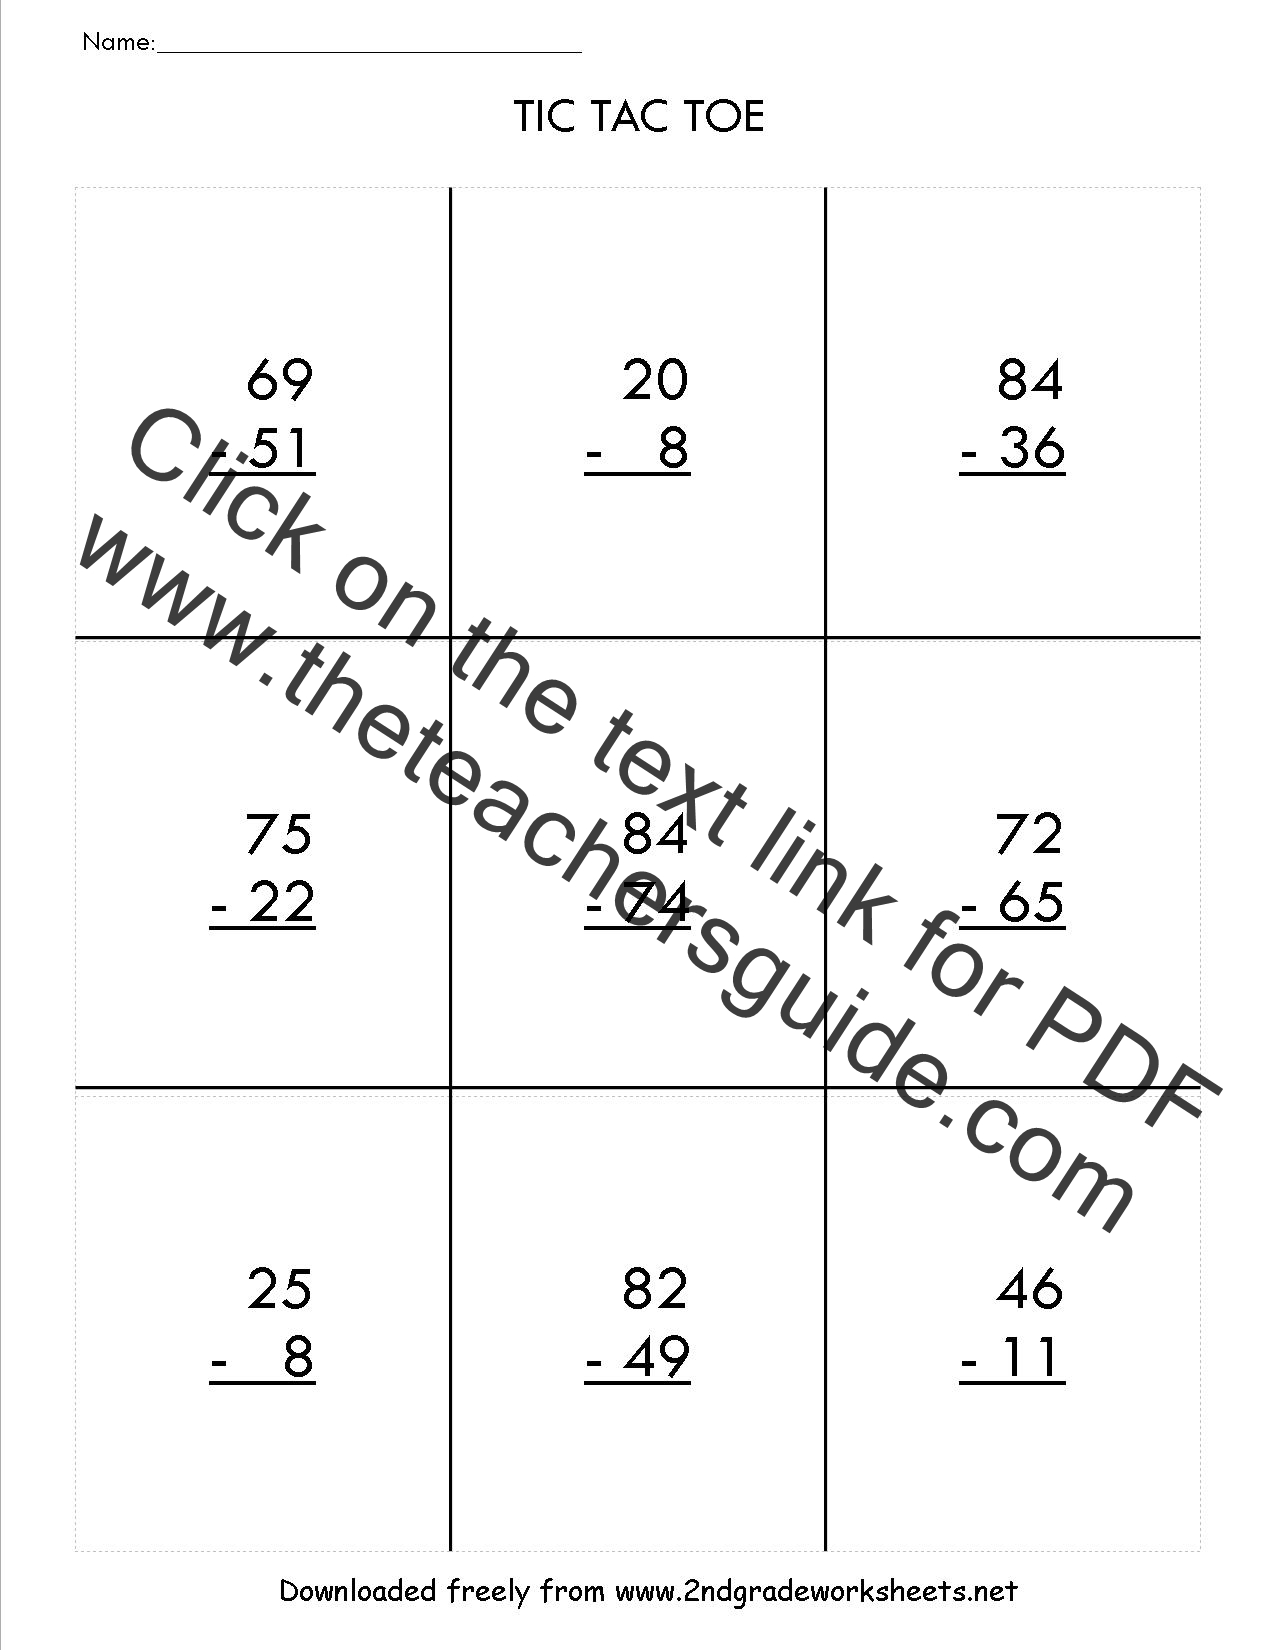 Two Digit Subtraction Worksheets – Free 2 Digit Subtraction with Regrouping Worksheets